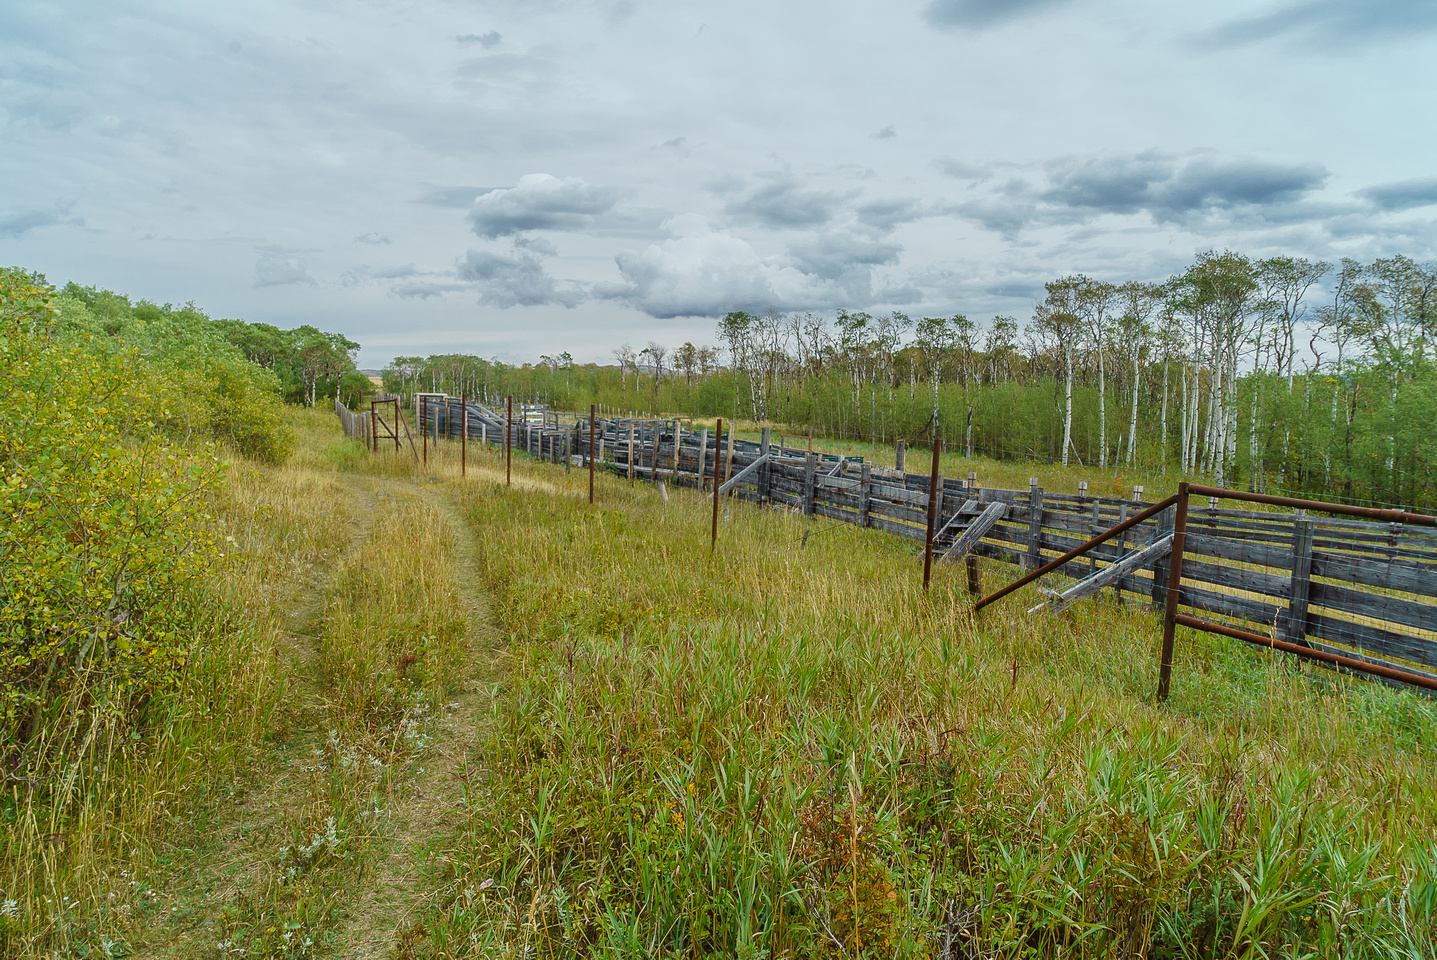 The bison fence / compound.